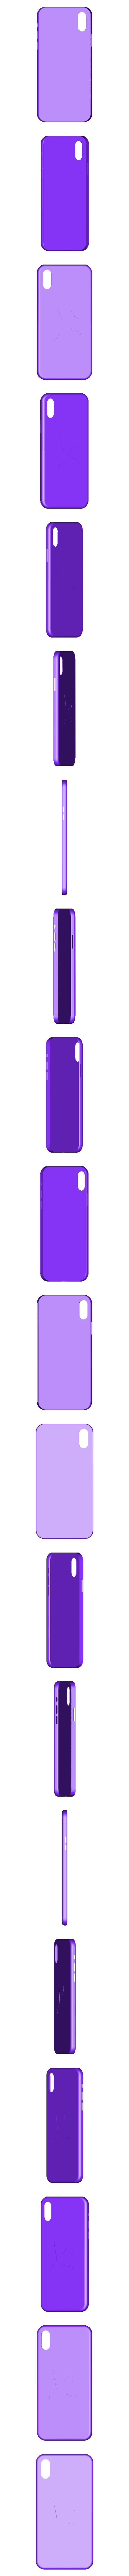 coque iphone X.STL Download free STL file hull iphone X plane • 3D printing template, imprimezen3d